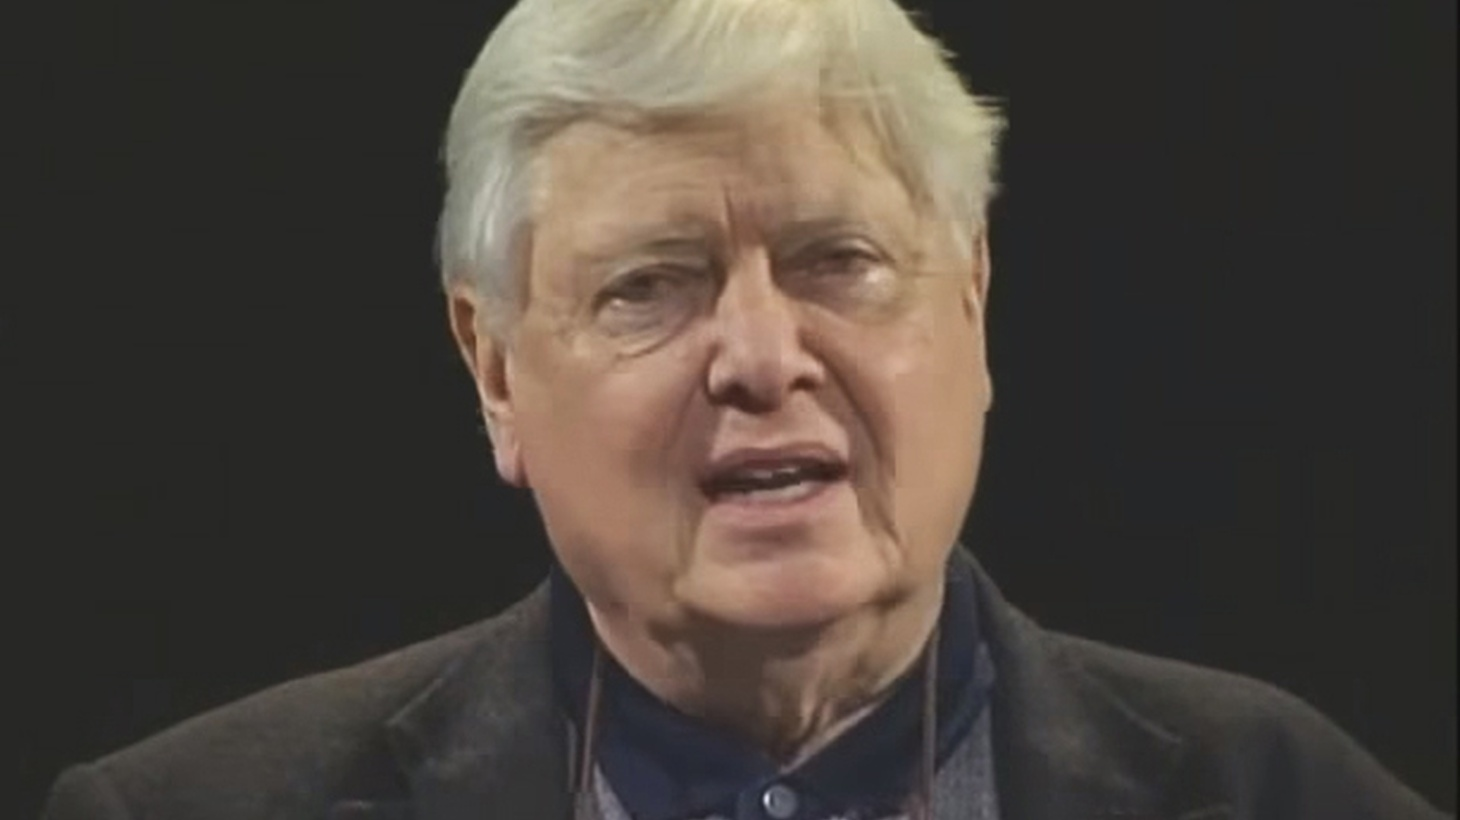 The great novelist, essayist and prose stylist William H. Gass died last week at 93. This tribute show is composed of excerpts from previous Bookworm conversations with Gass.